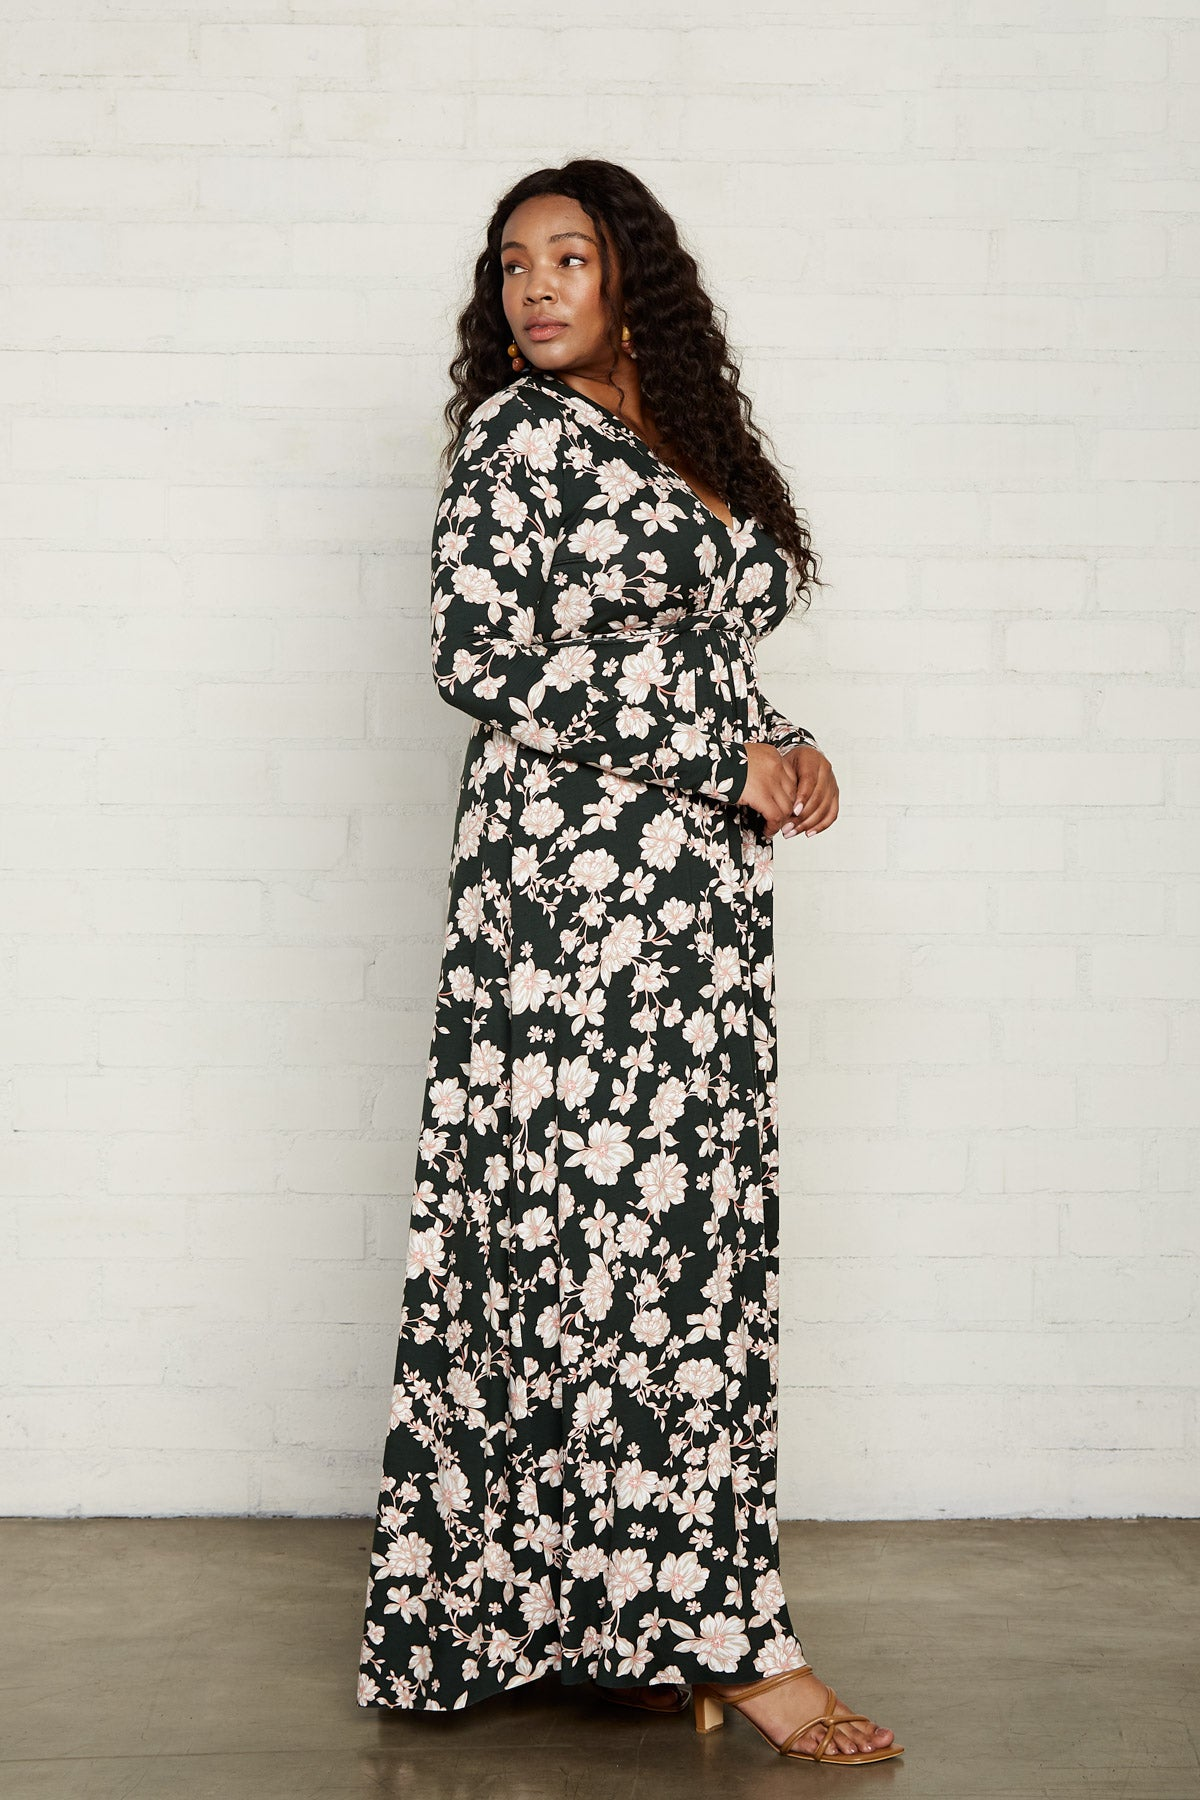 Long Sleeve Full Length Caftan - Evergreen Floral, Plus Size